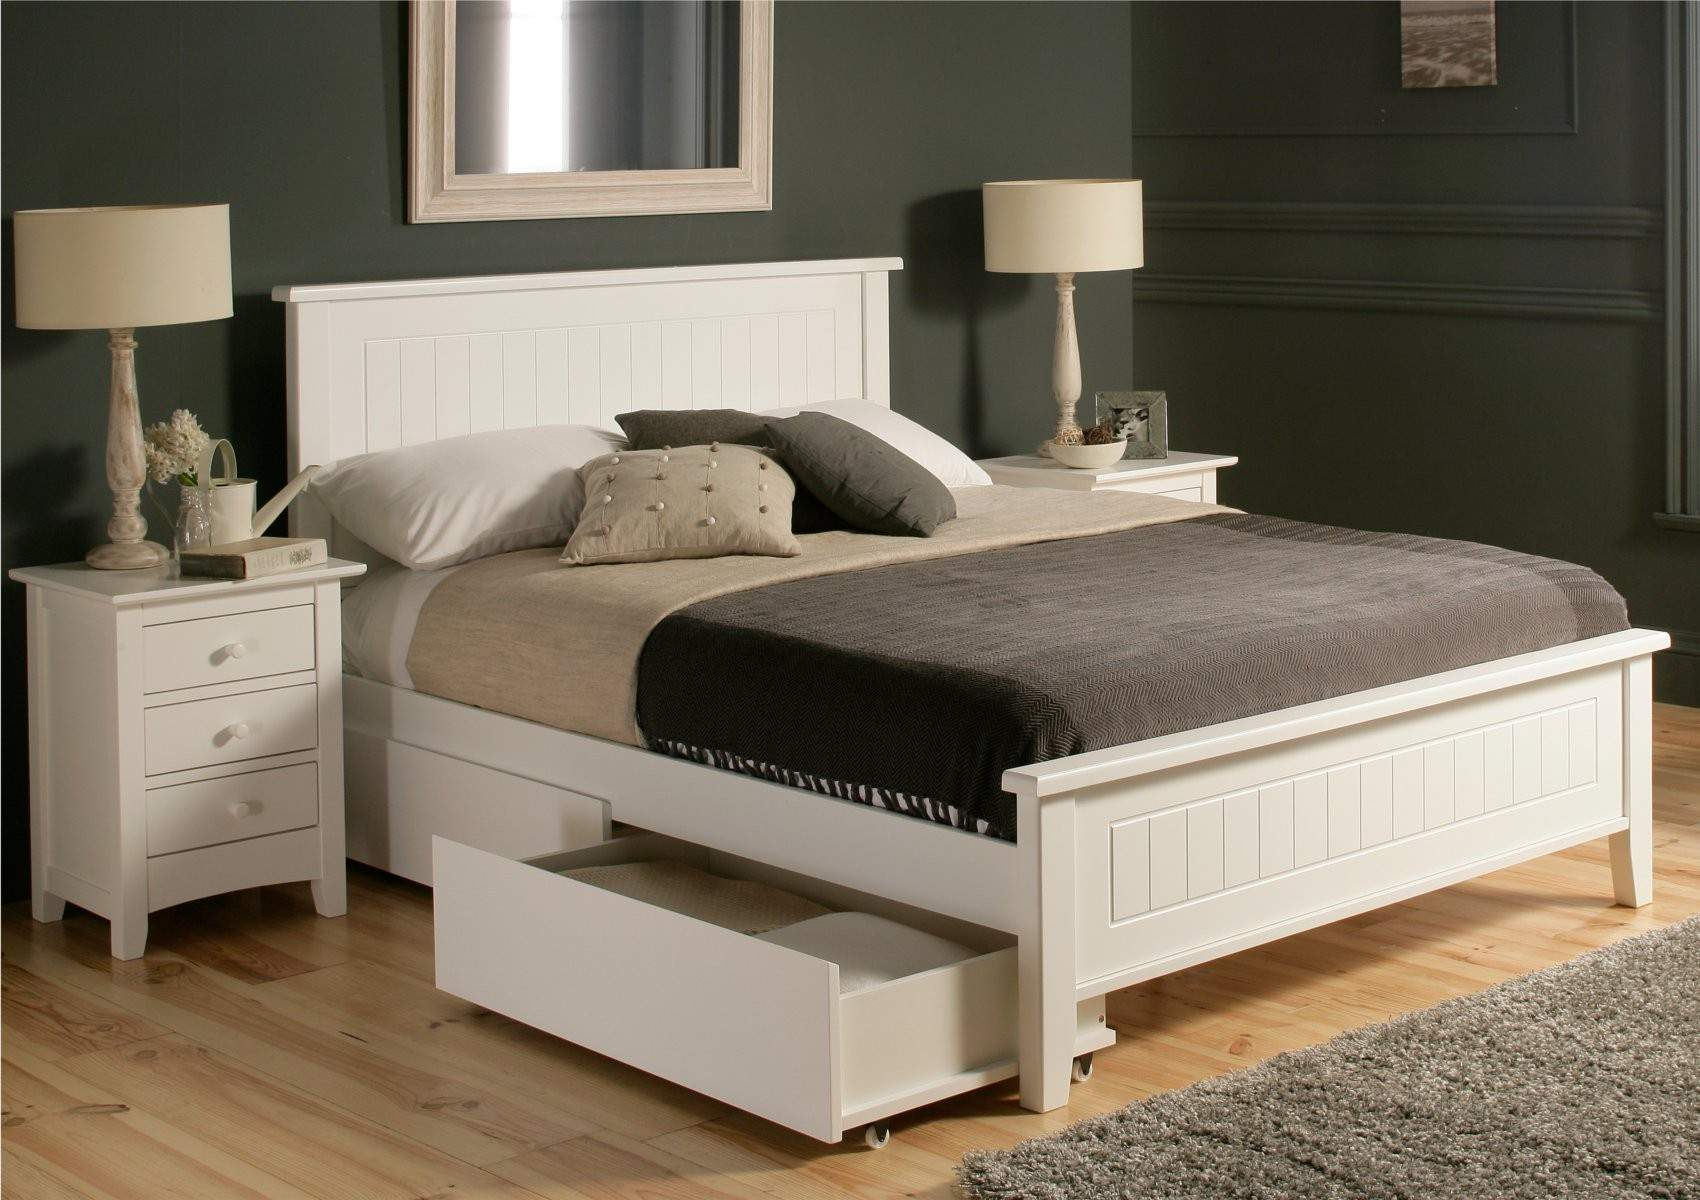 Wooden White Bed With Drawers Underneath And Small Cabinet Standing Lamp Grey Fur Rug